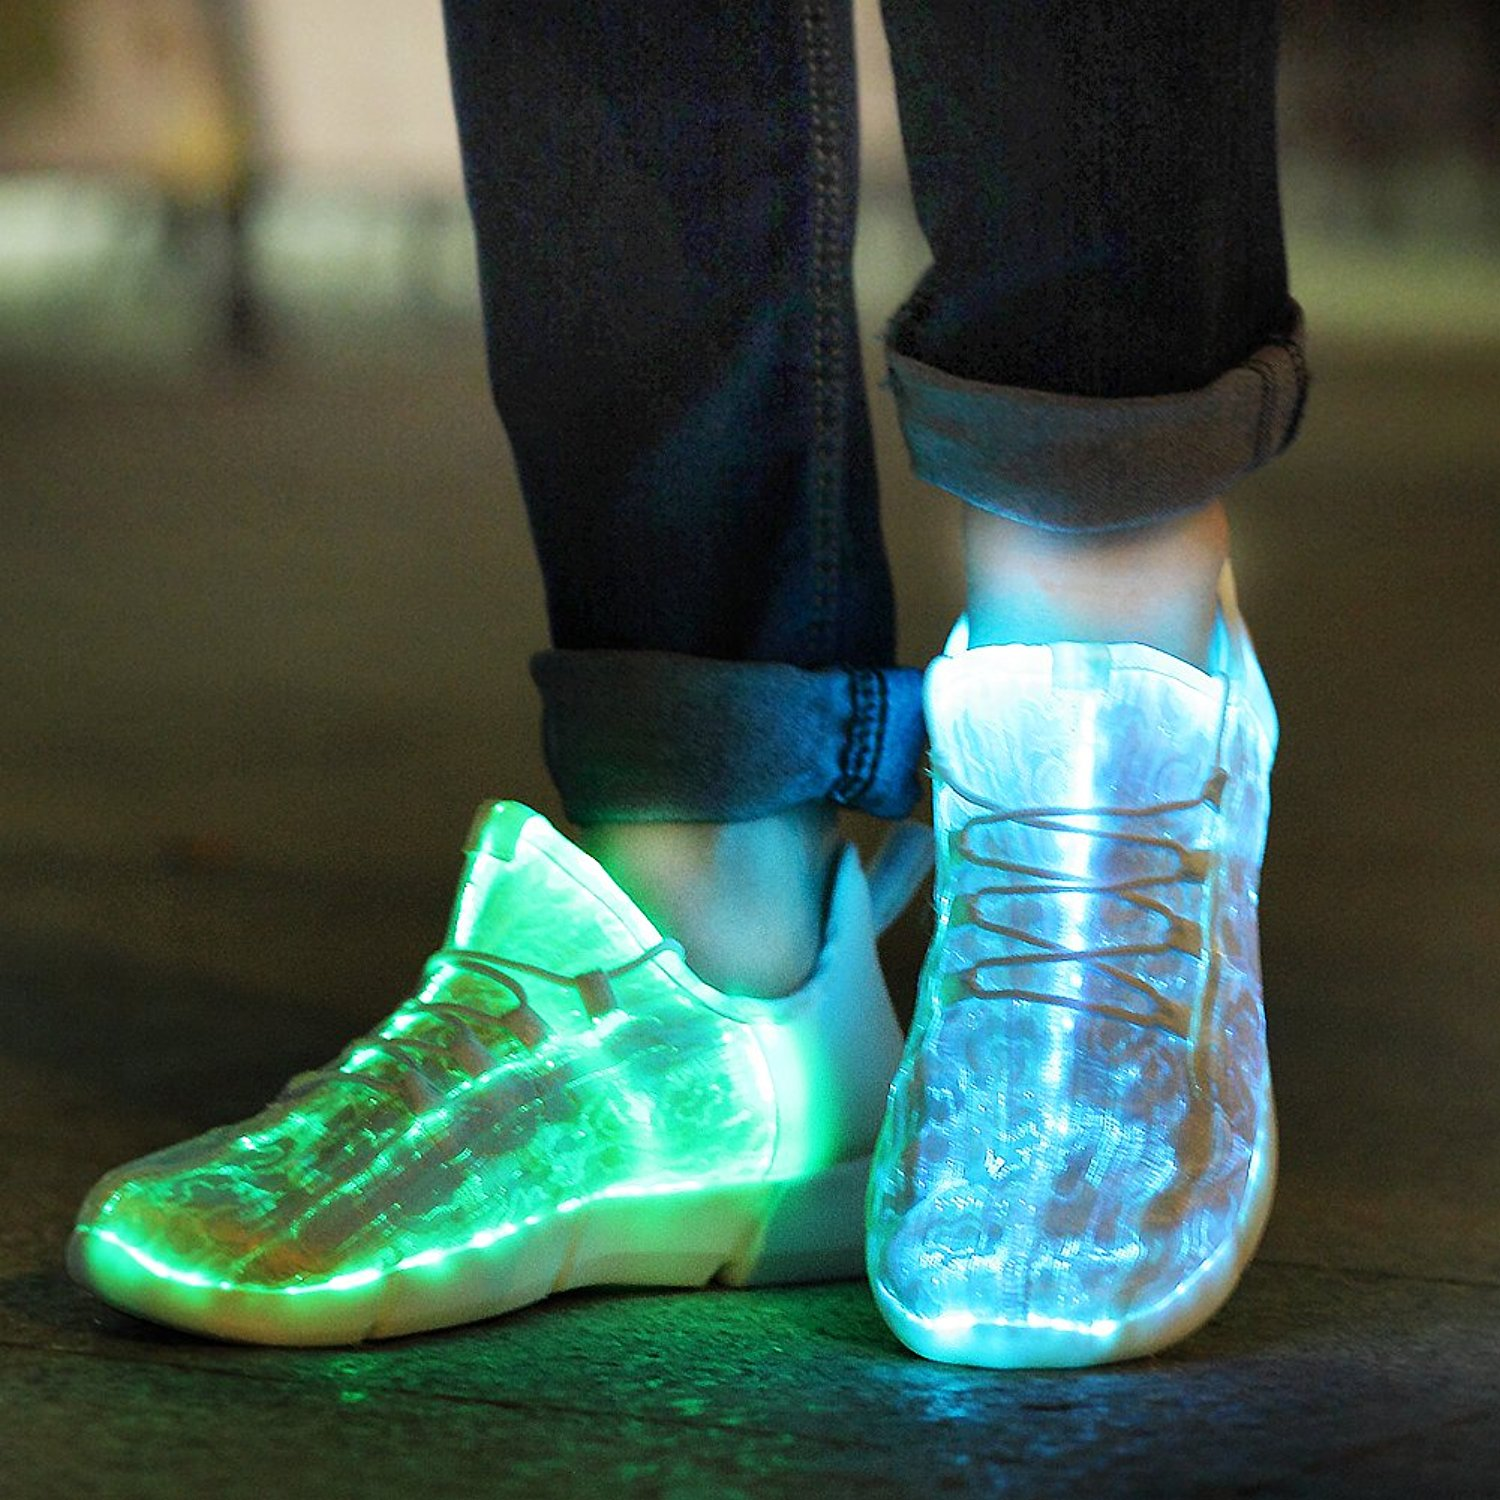 2019 Spring Adults Led Shoes Men Low Top Glowing Casual Shoes Women Lace Up Sneakers Usb Charging Breathable Lovers Sneakers A Complete Range Of Specifications Shoes Men's Shoes